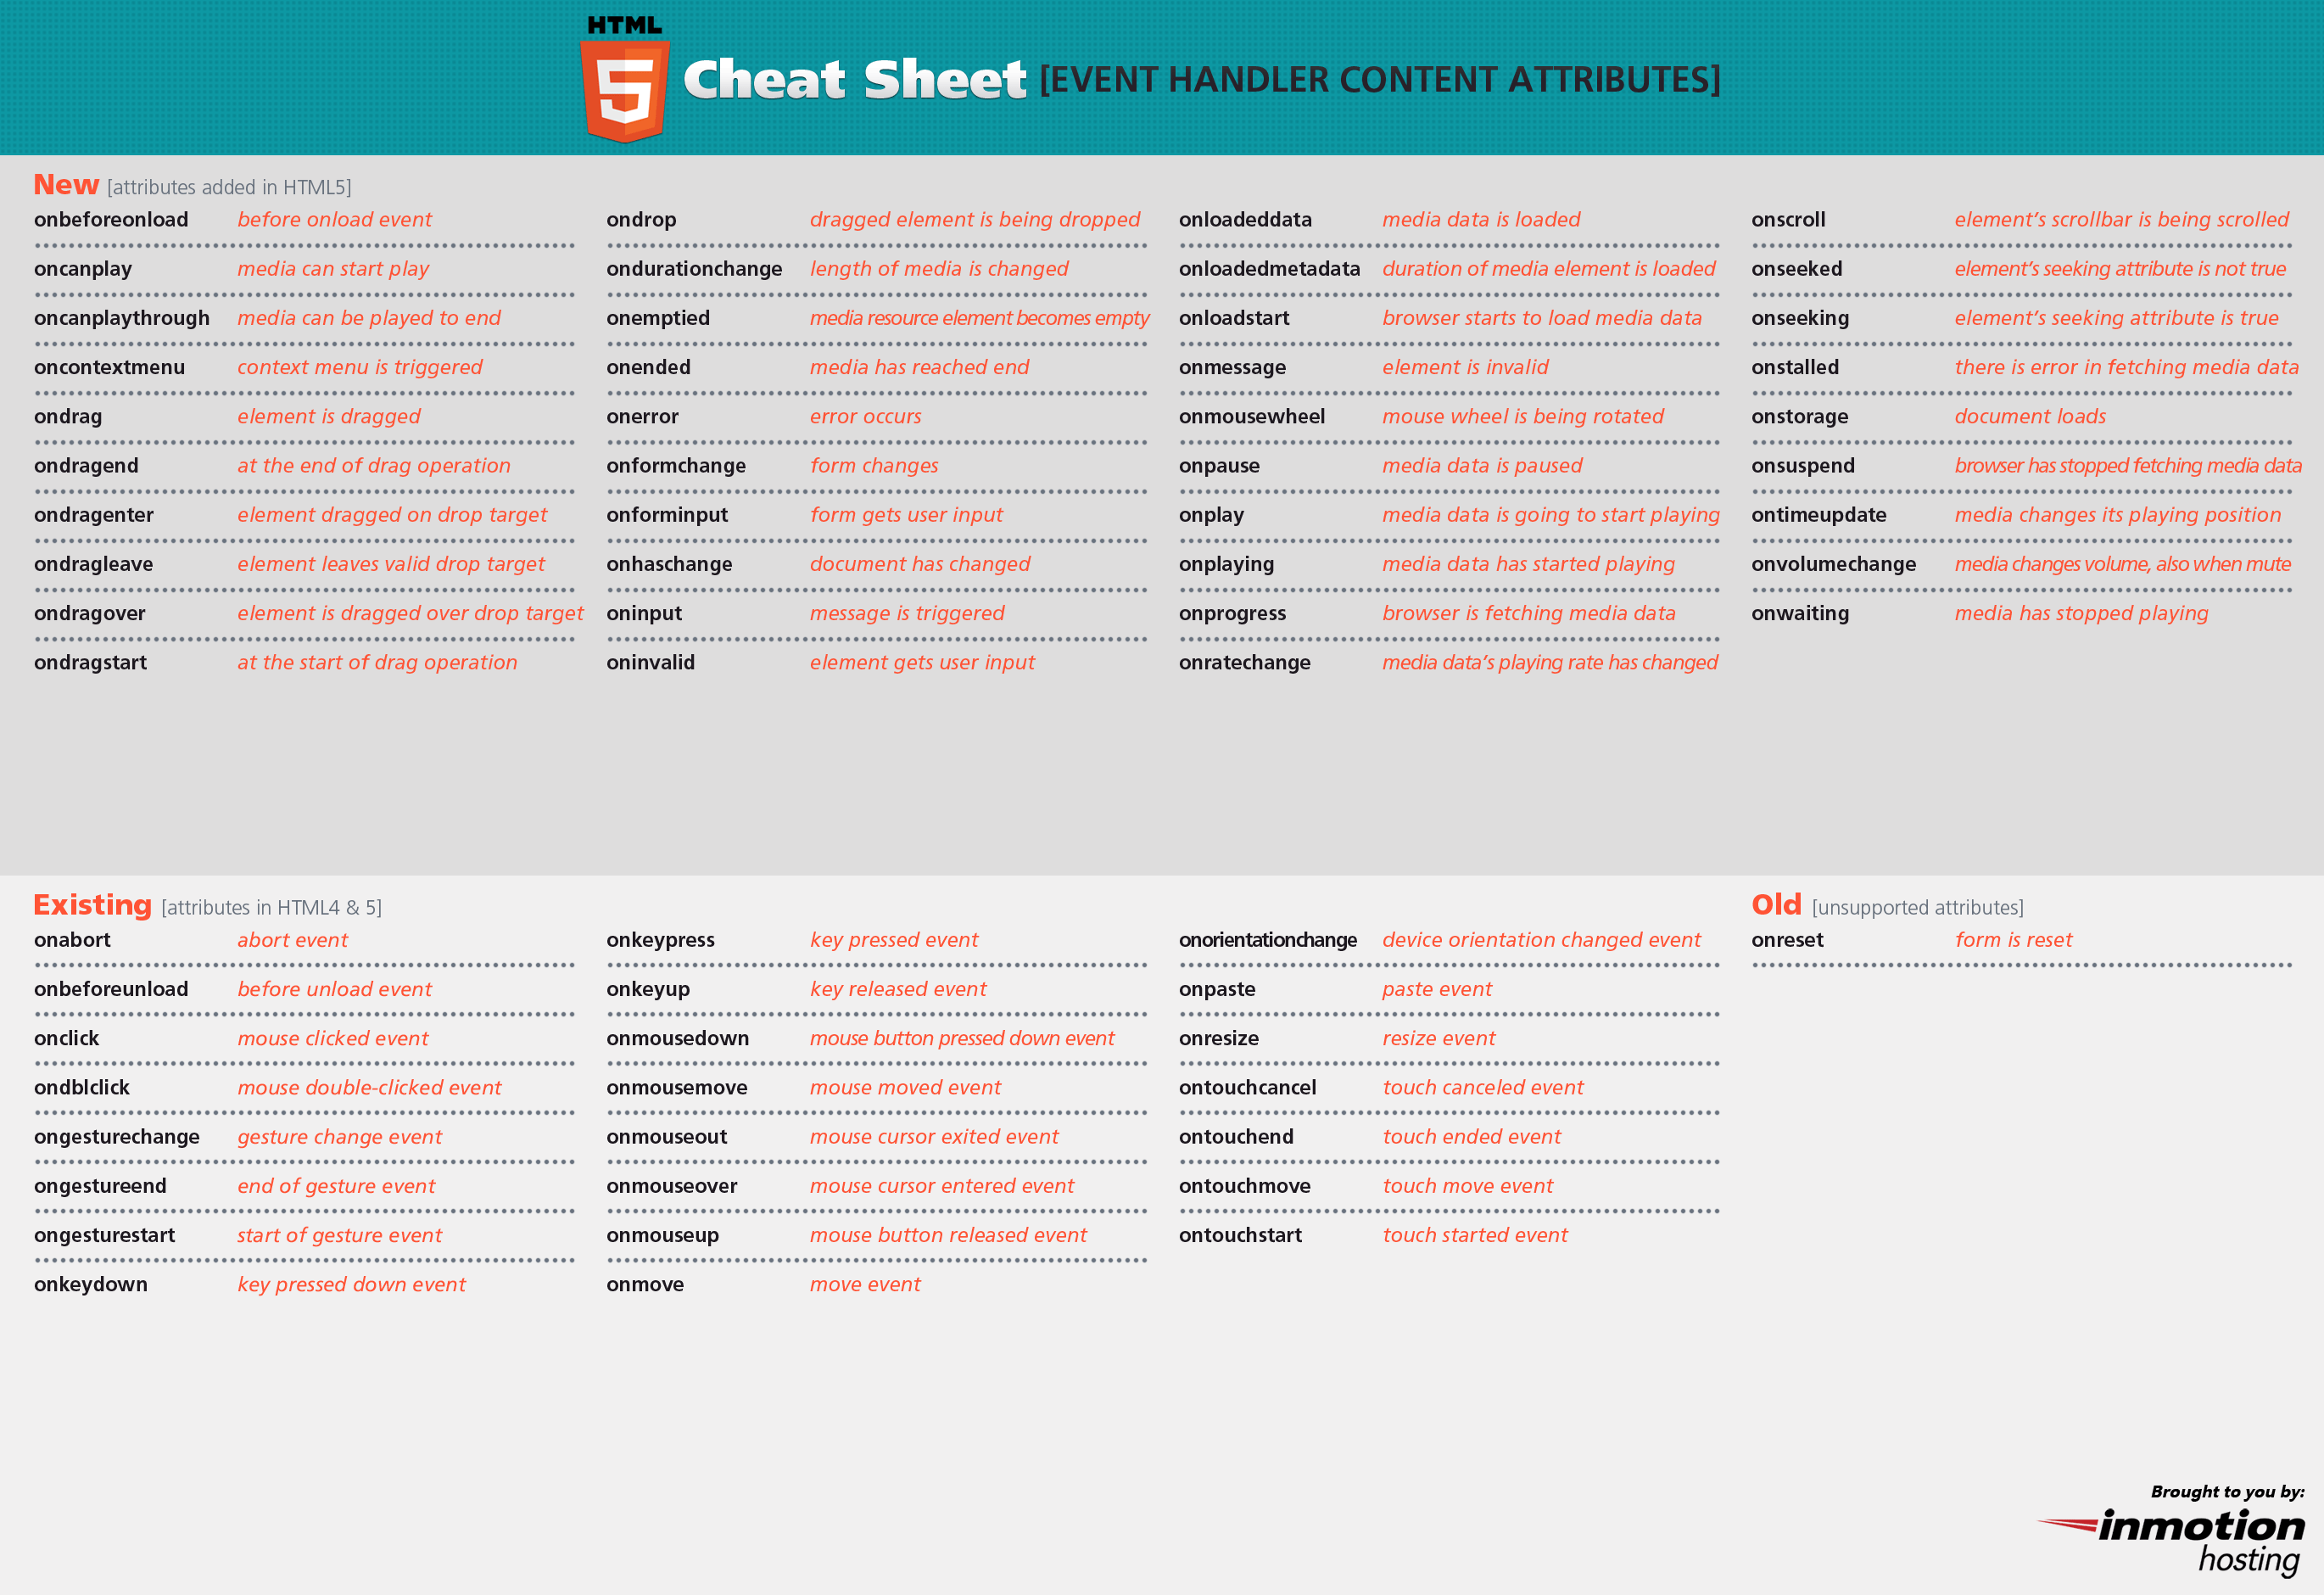 Second Html 5 cheat sheet